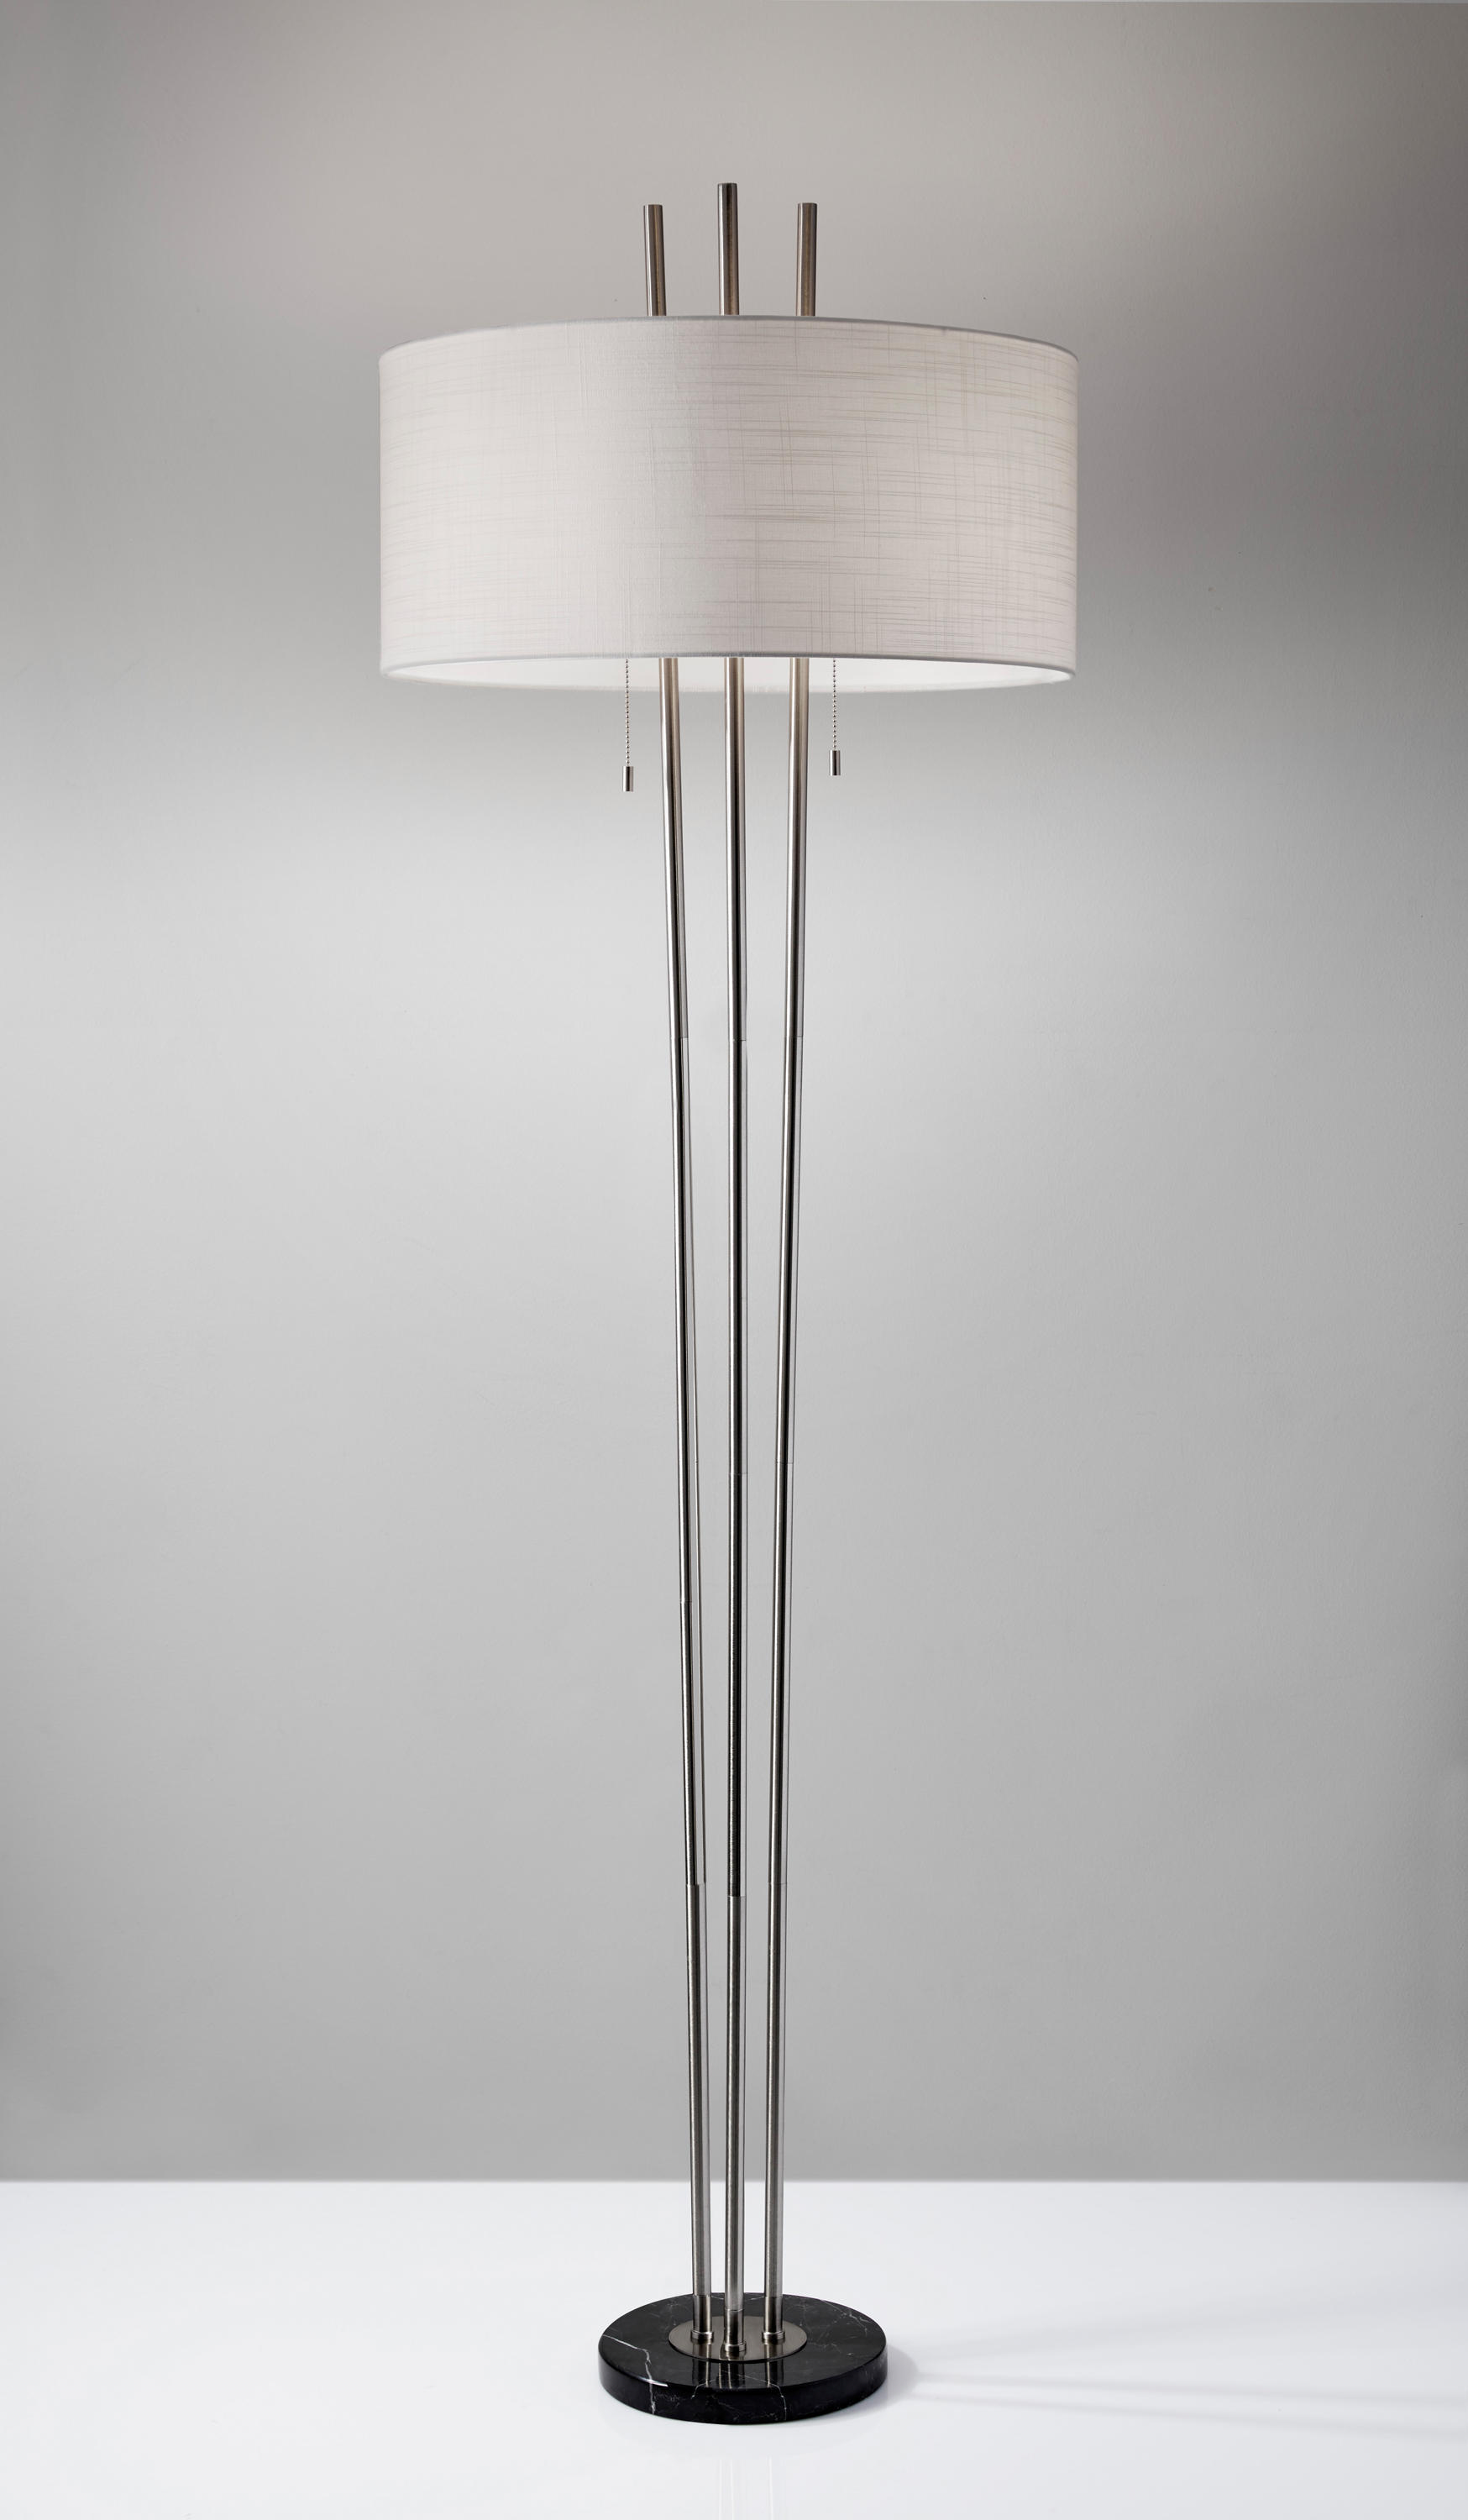 Ambient Floor Lamp Anderson Table Lamp General Lighting From Ads360